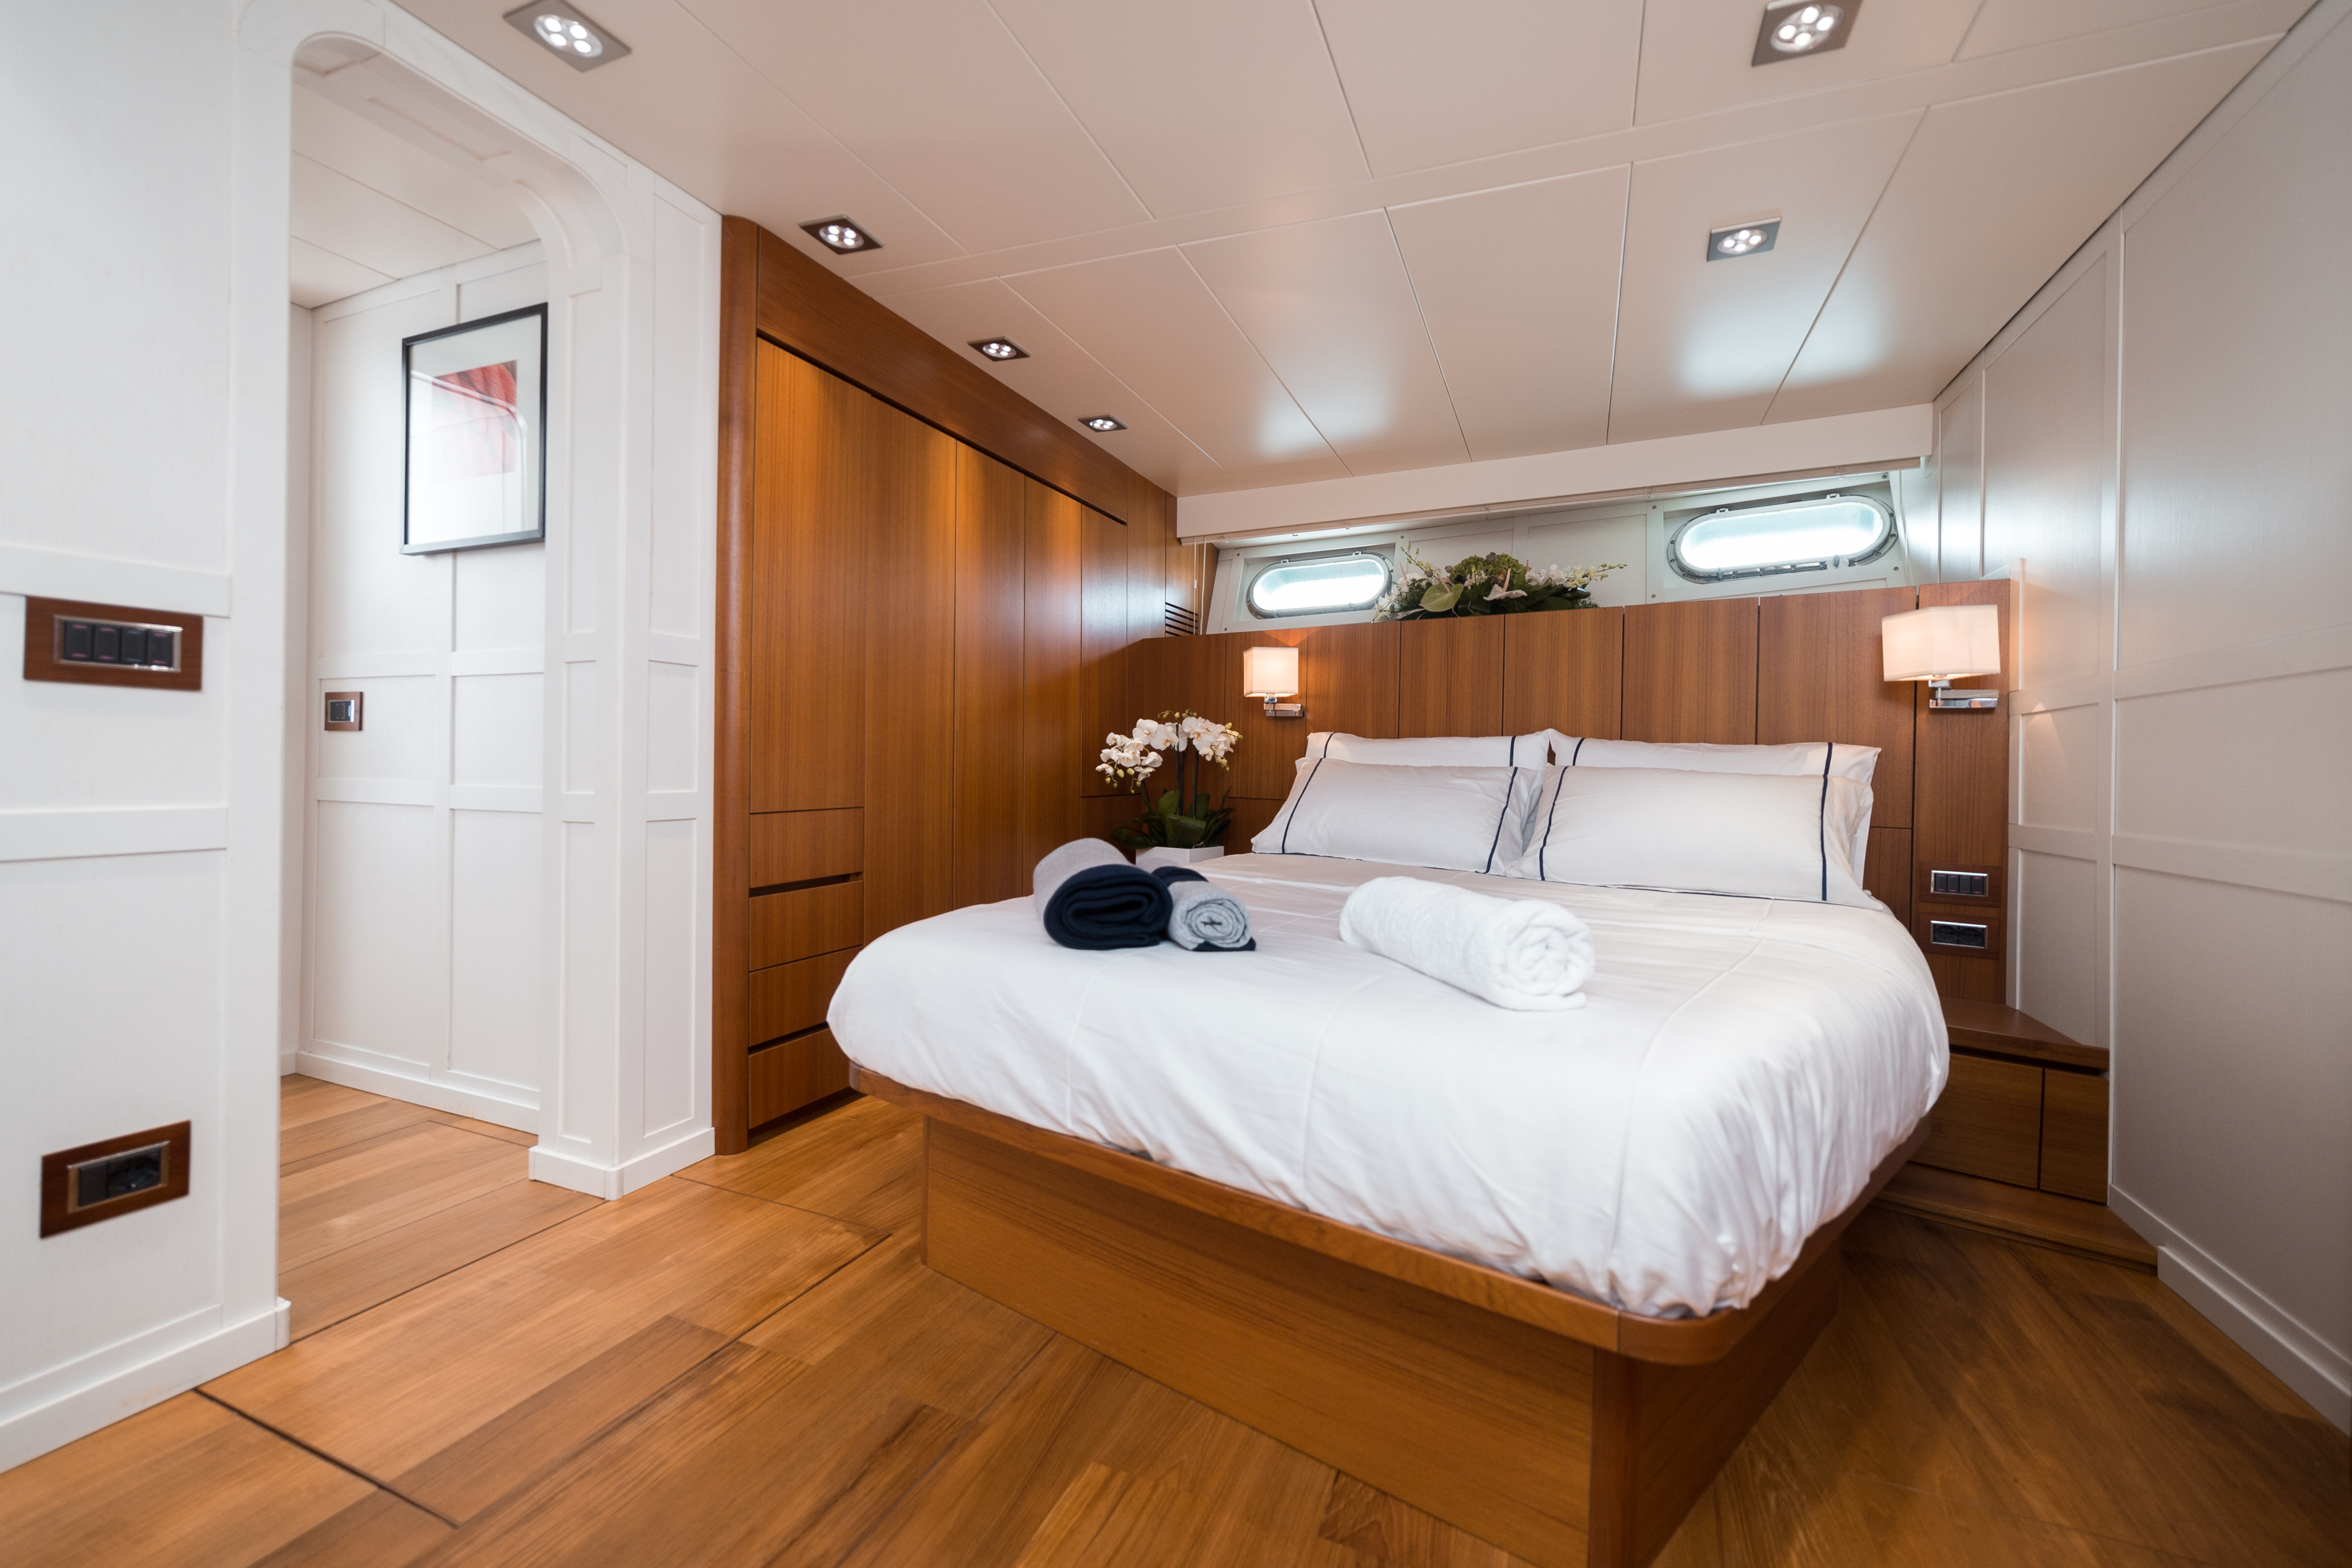 M/Y PAOLUCCI yacht for charter master bedroom